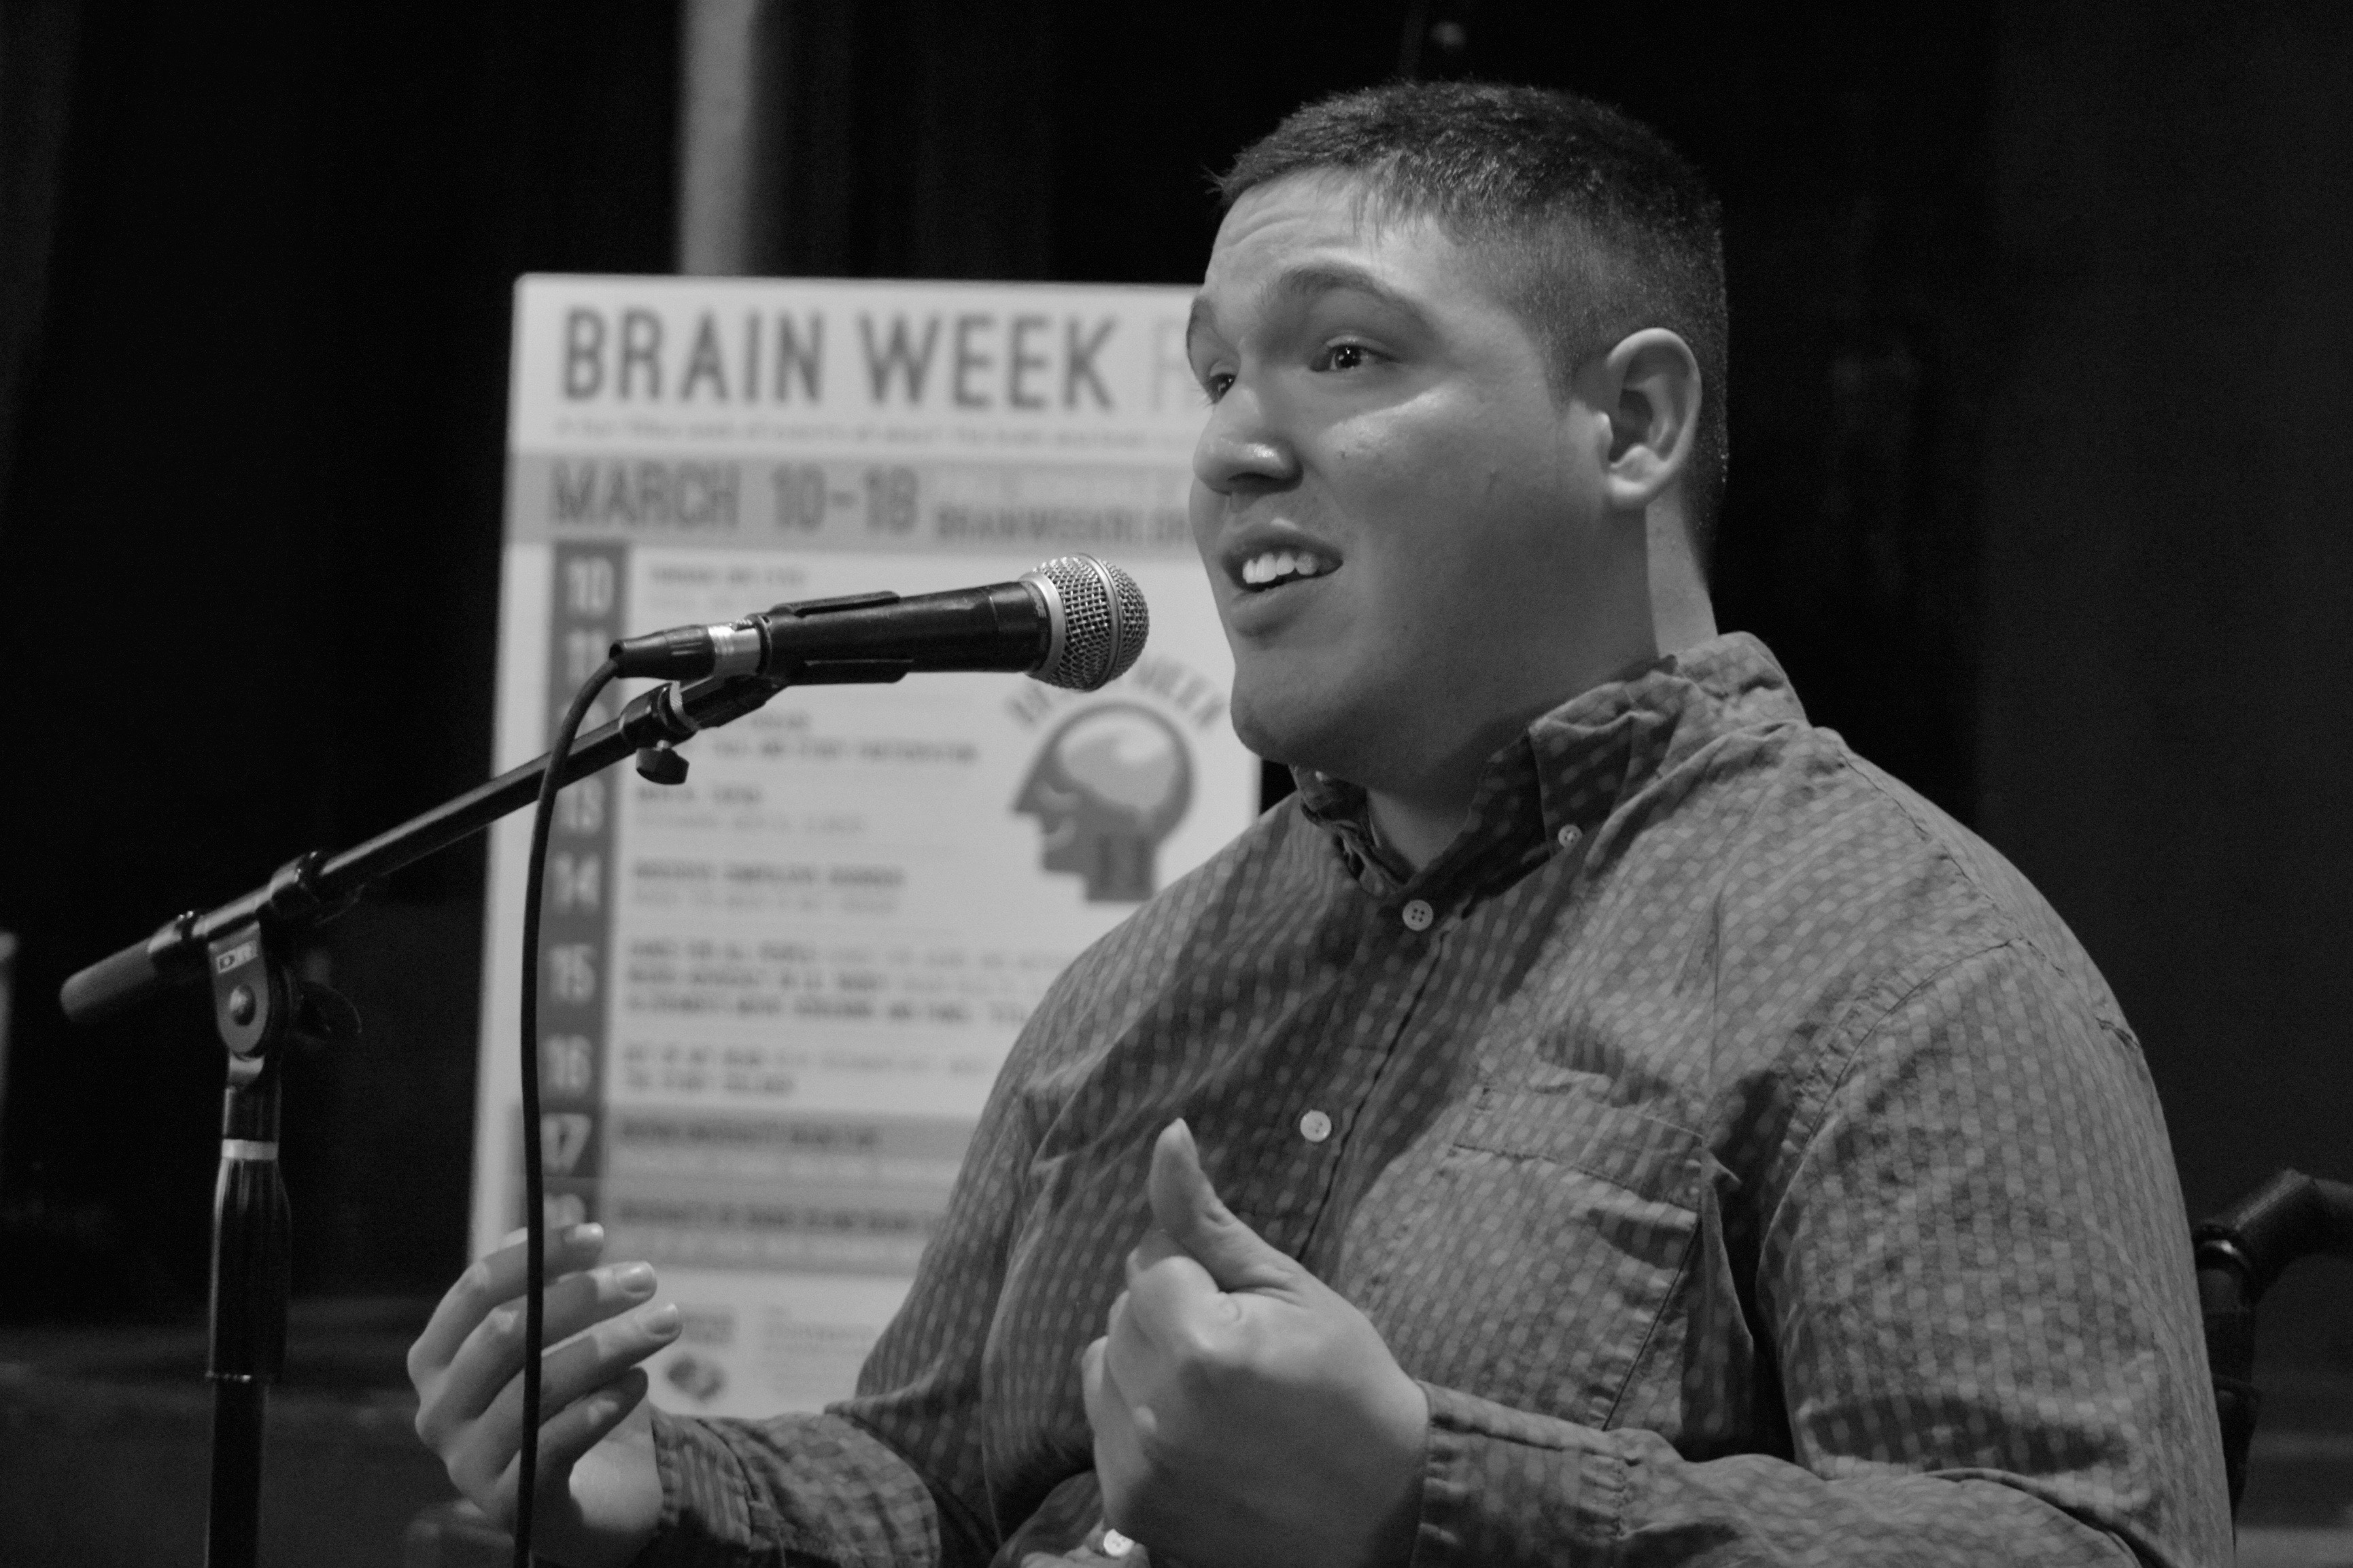 Black and white image of Jose Rosario speaking into microphone